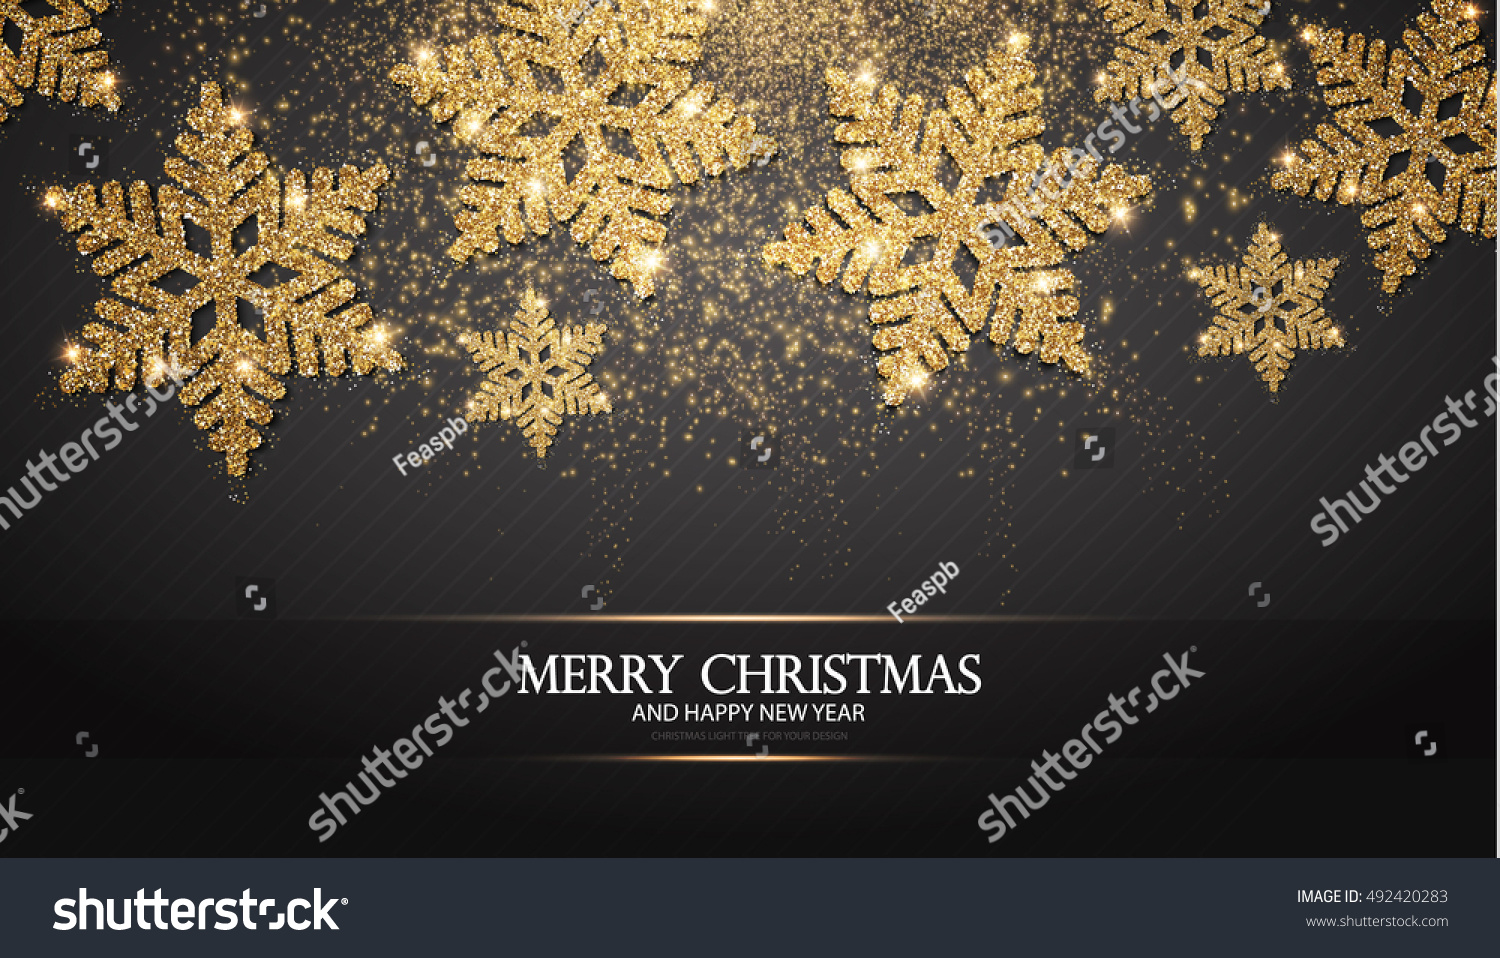 Elegant Christmas Background with Shining Gold Snowflakes. Vector illustration #492420283